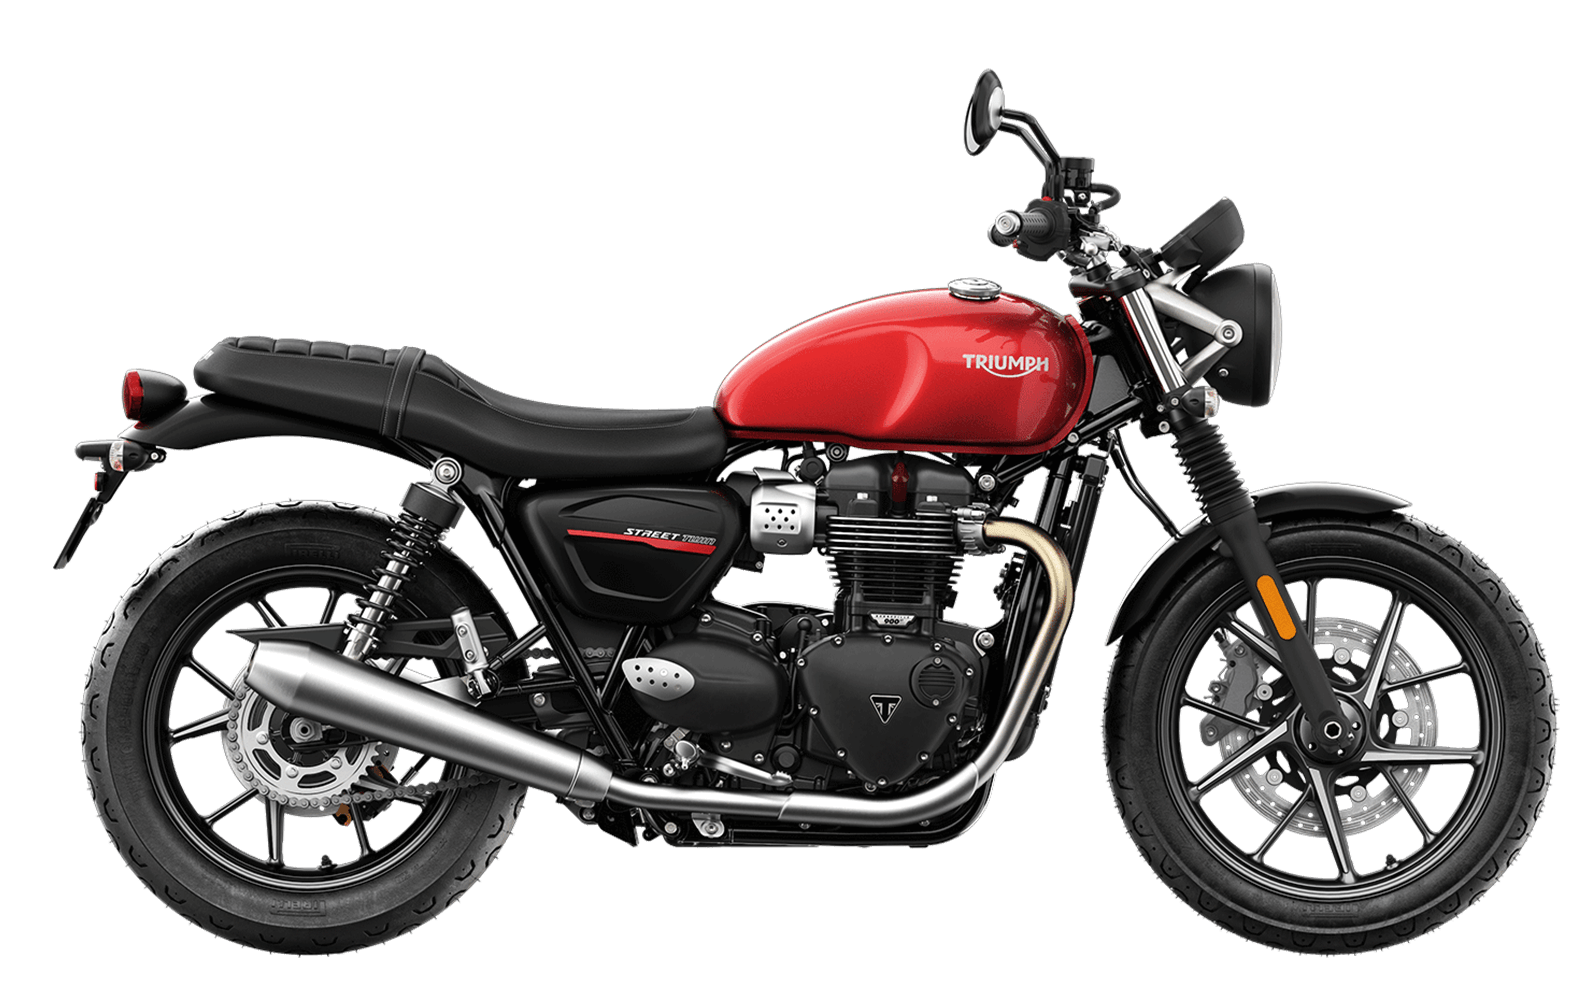 2019 Triumph Street Twin in Korosi Red